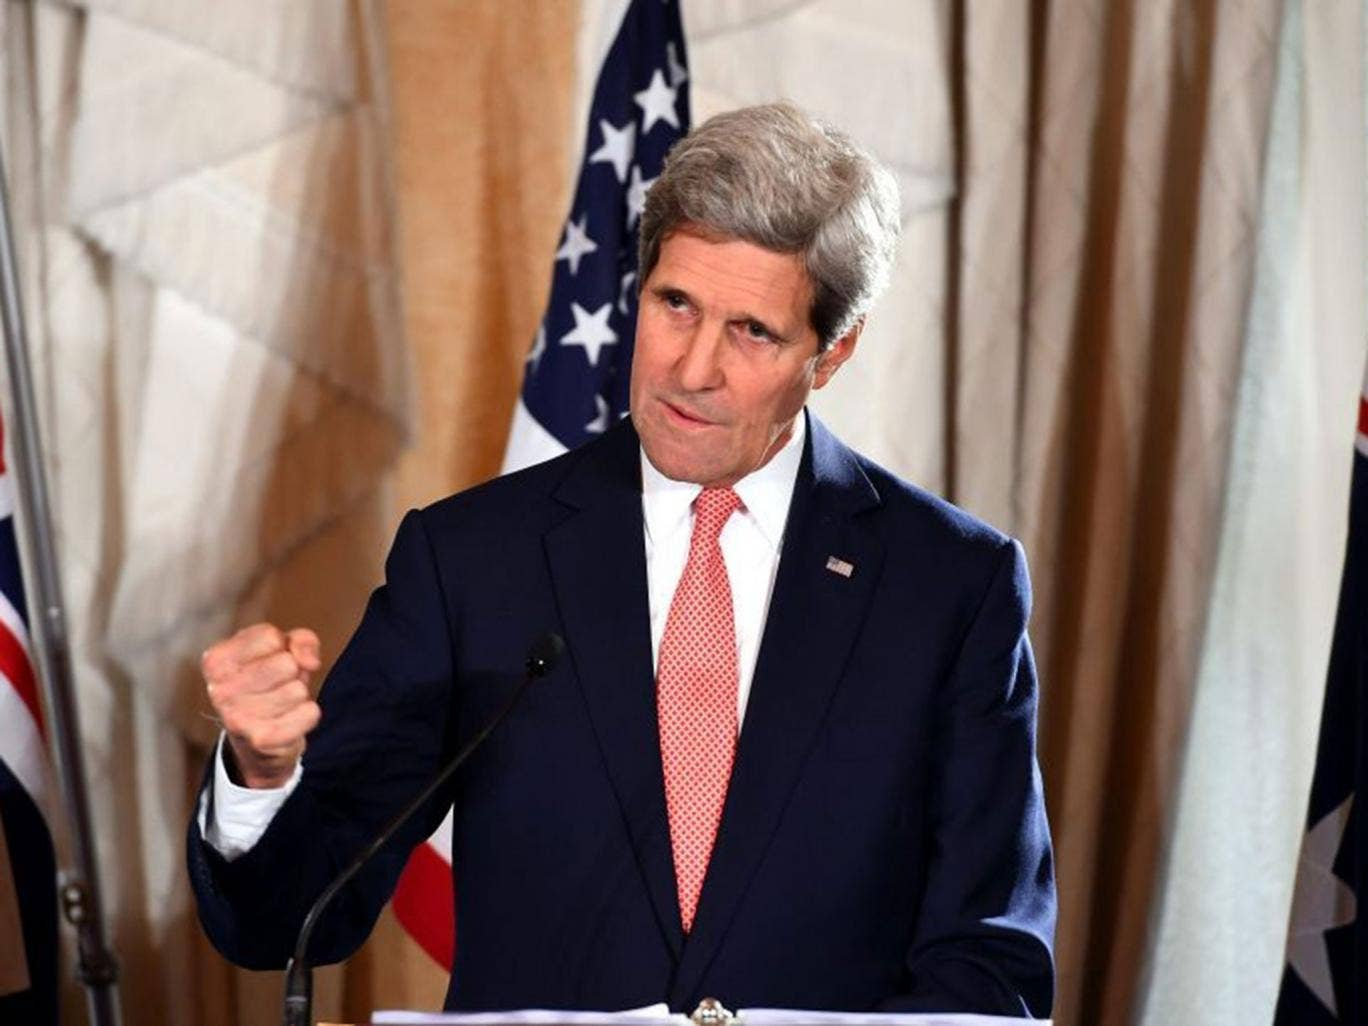 John Kerry had even talked of the importance of the SDN blacklist remaining in place when he spoke to reporters on Sunday in the grounds of the hotel